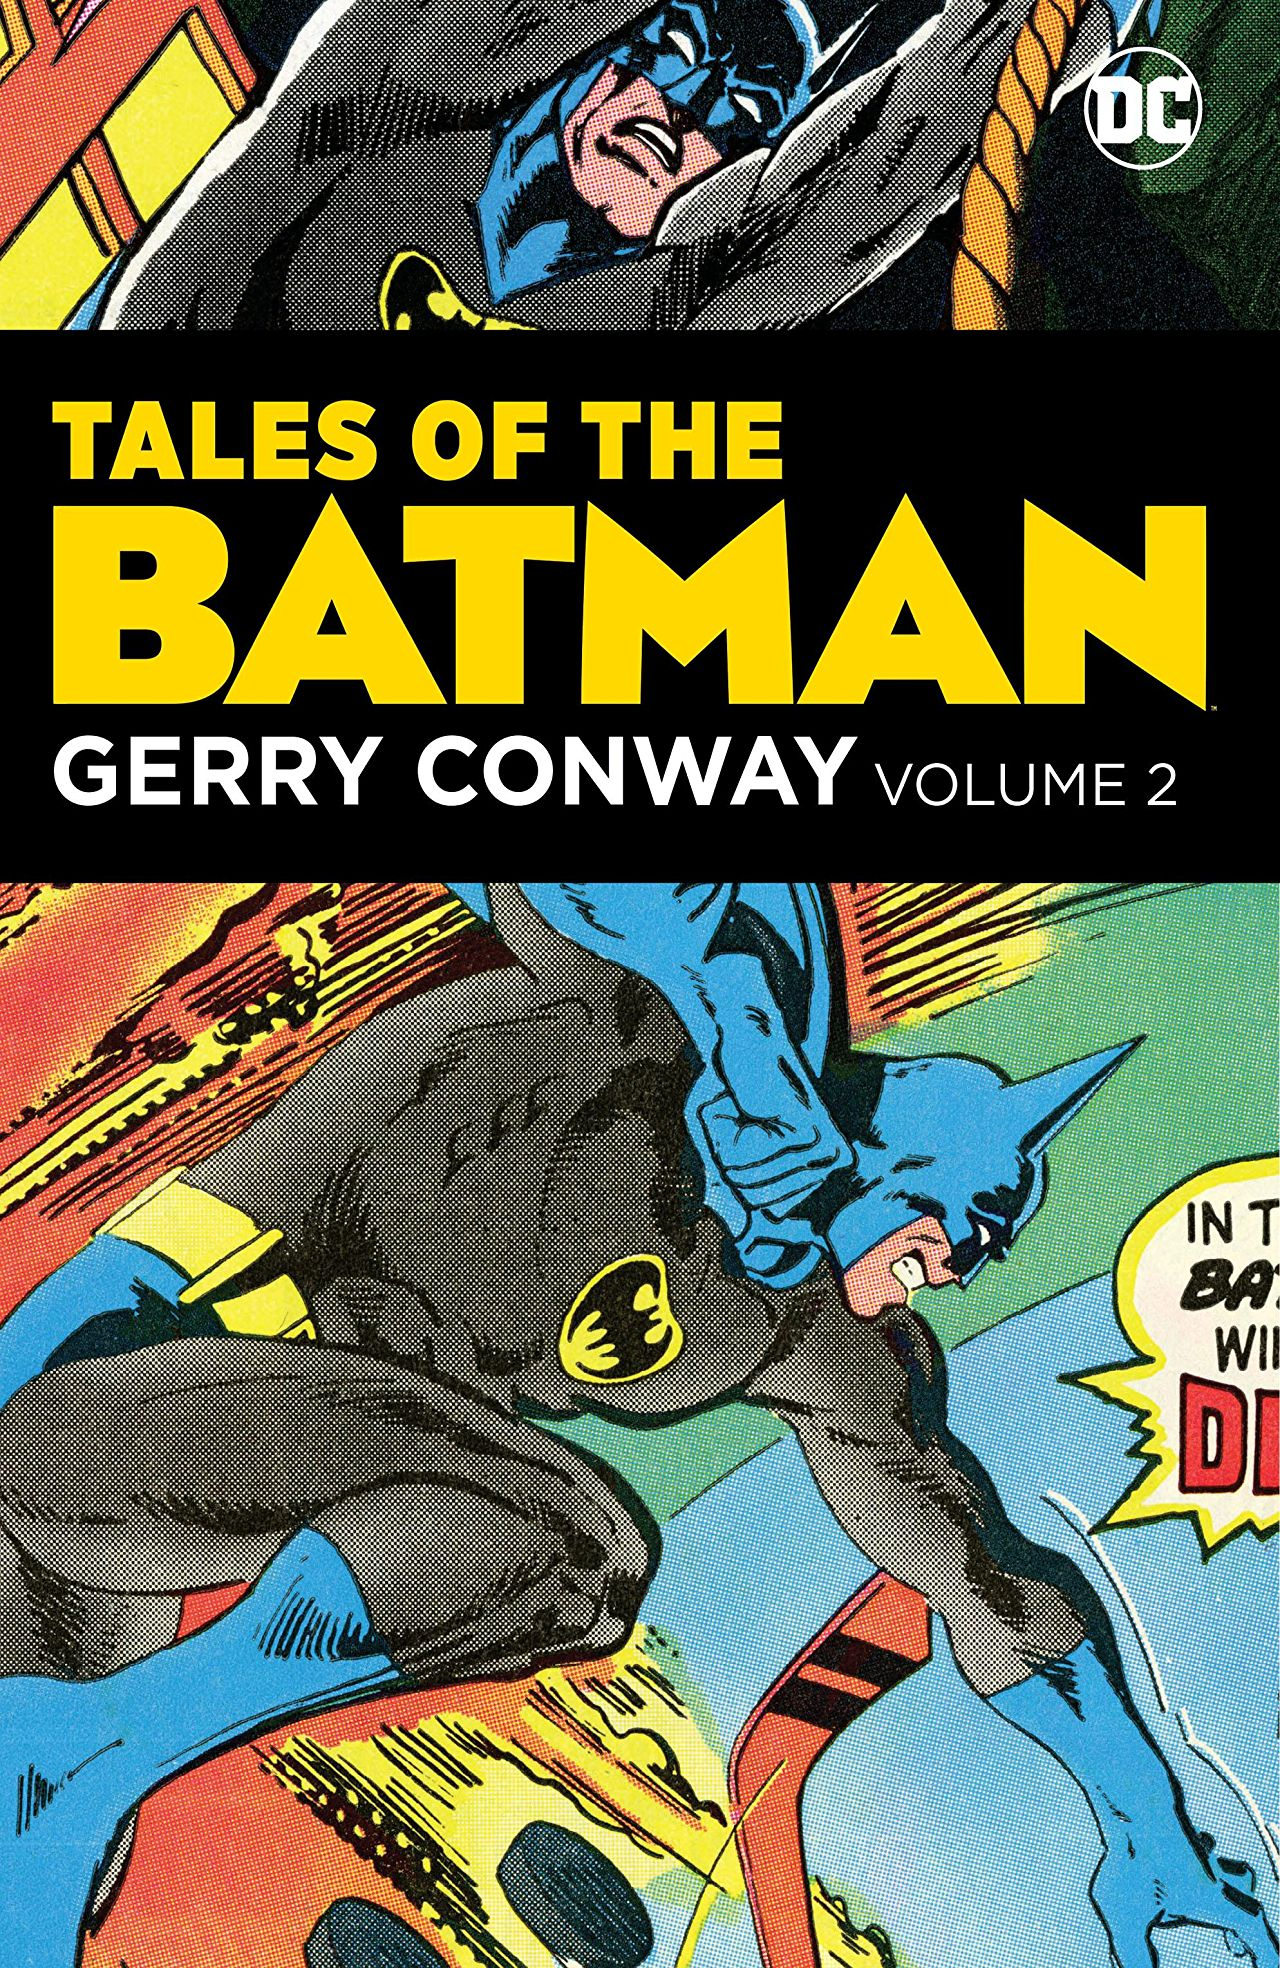 Tales of the Batman: Gerry Conway Vol. 2 (Collected)